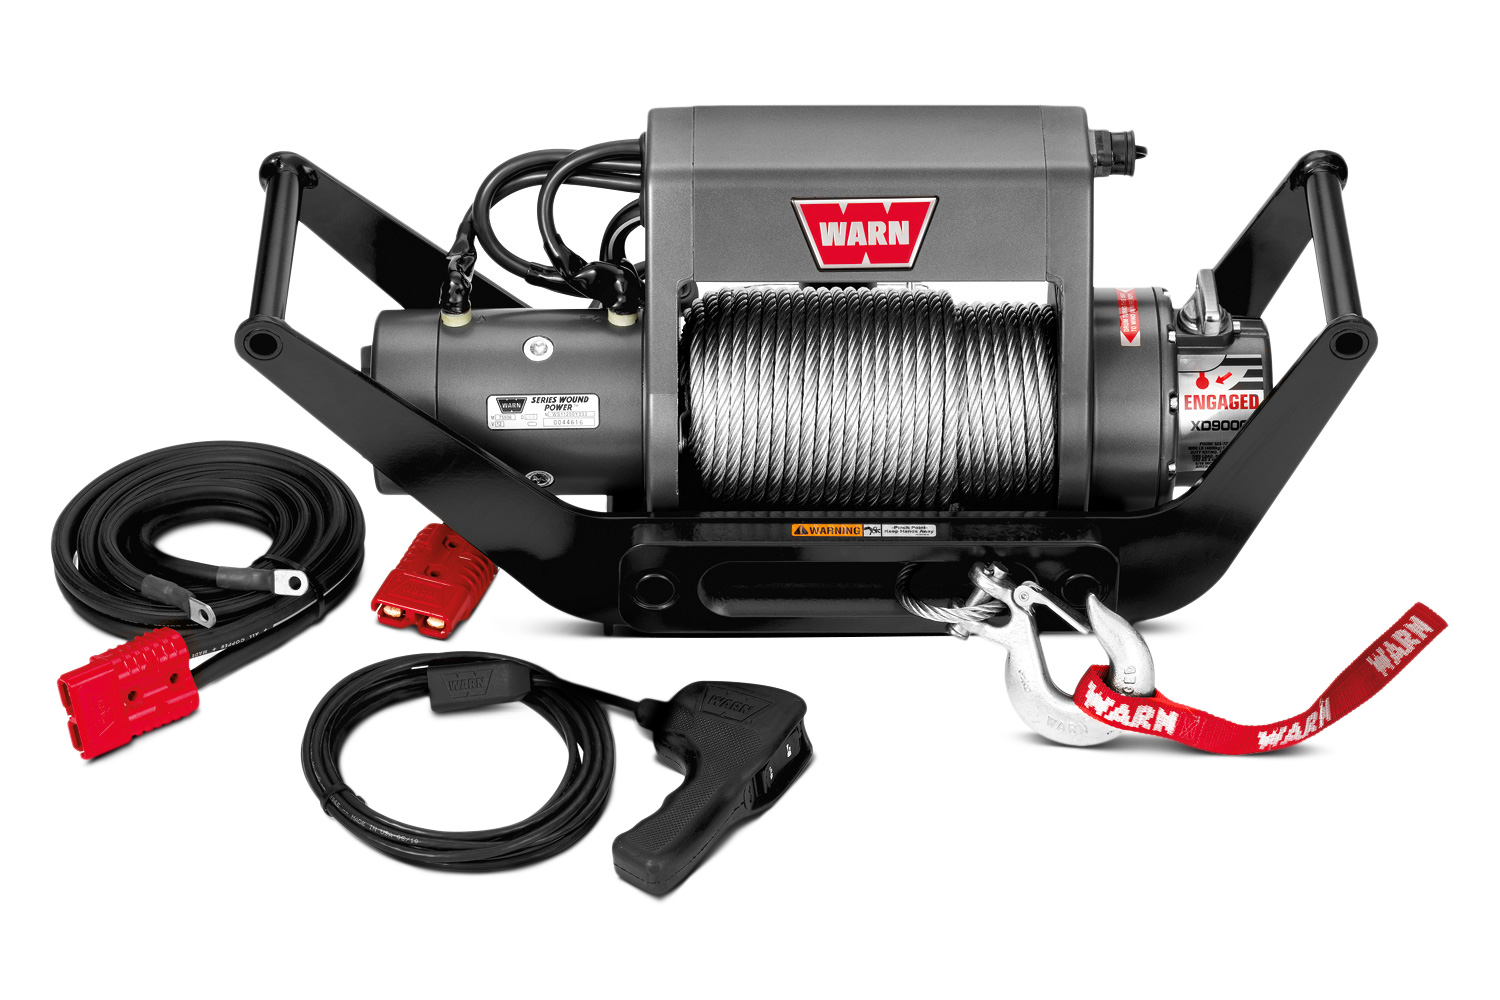 Warn 9000 lbs. 12V DC XD9000i Multi-Mount Self-Recovery Electric Winch Kit